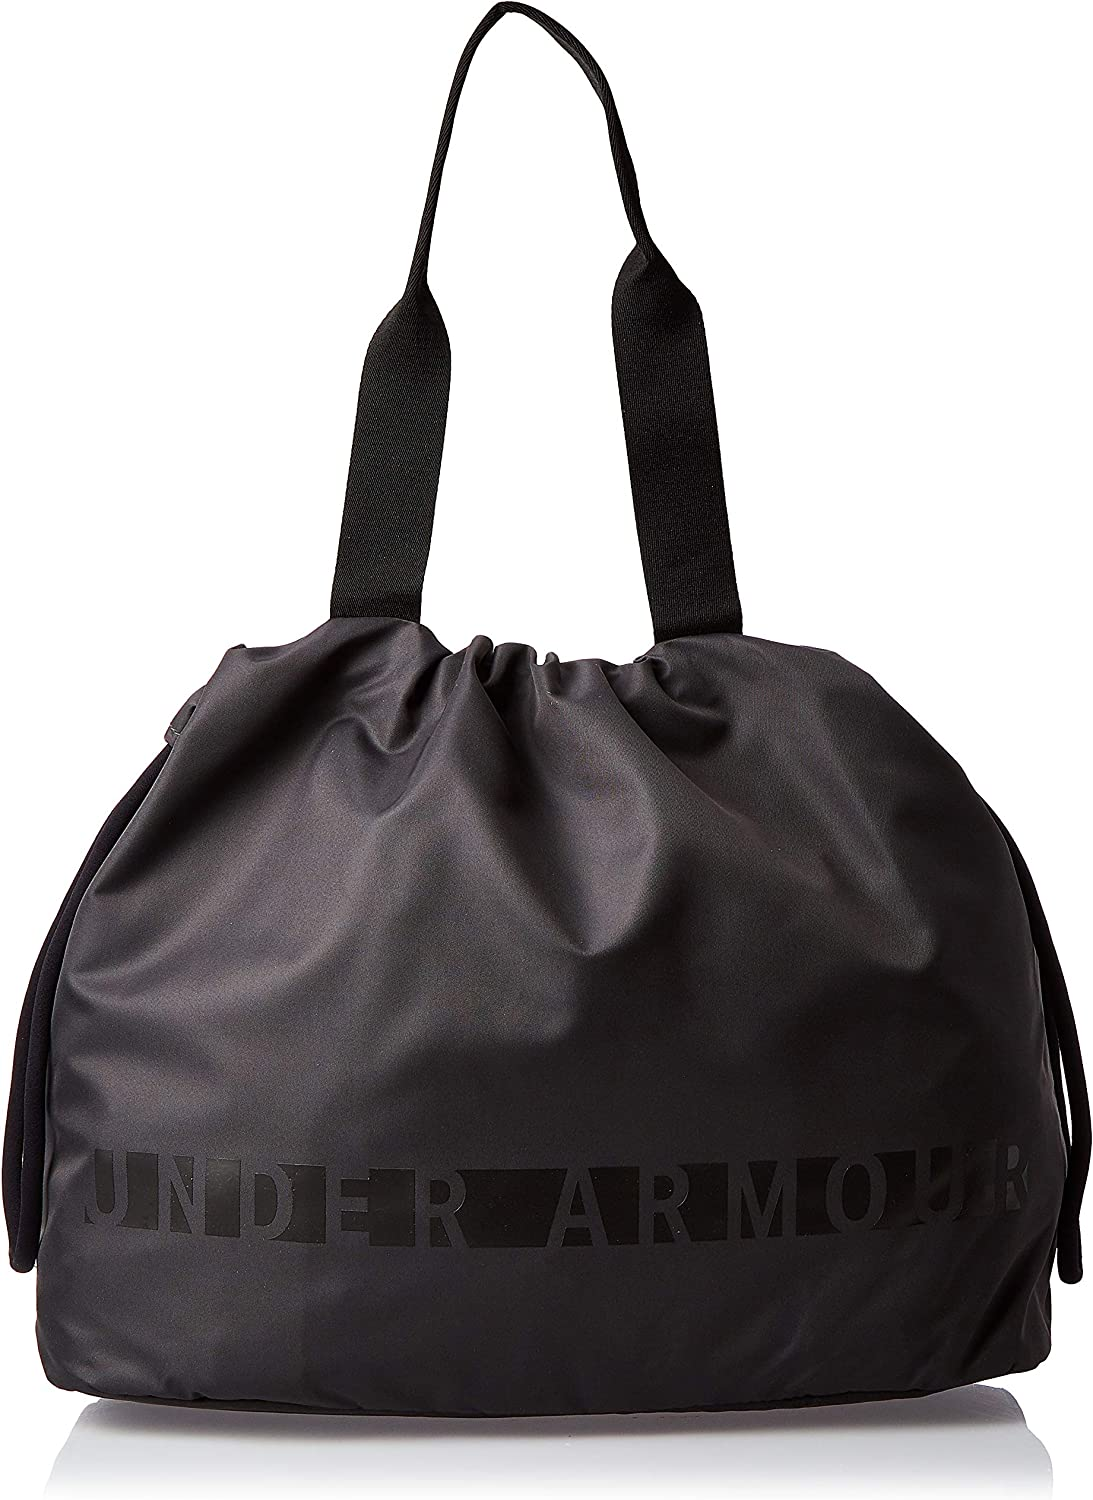 Halo Gray Taille Unique Under Armour Favorite Tote Sac de Sport Femme Gris